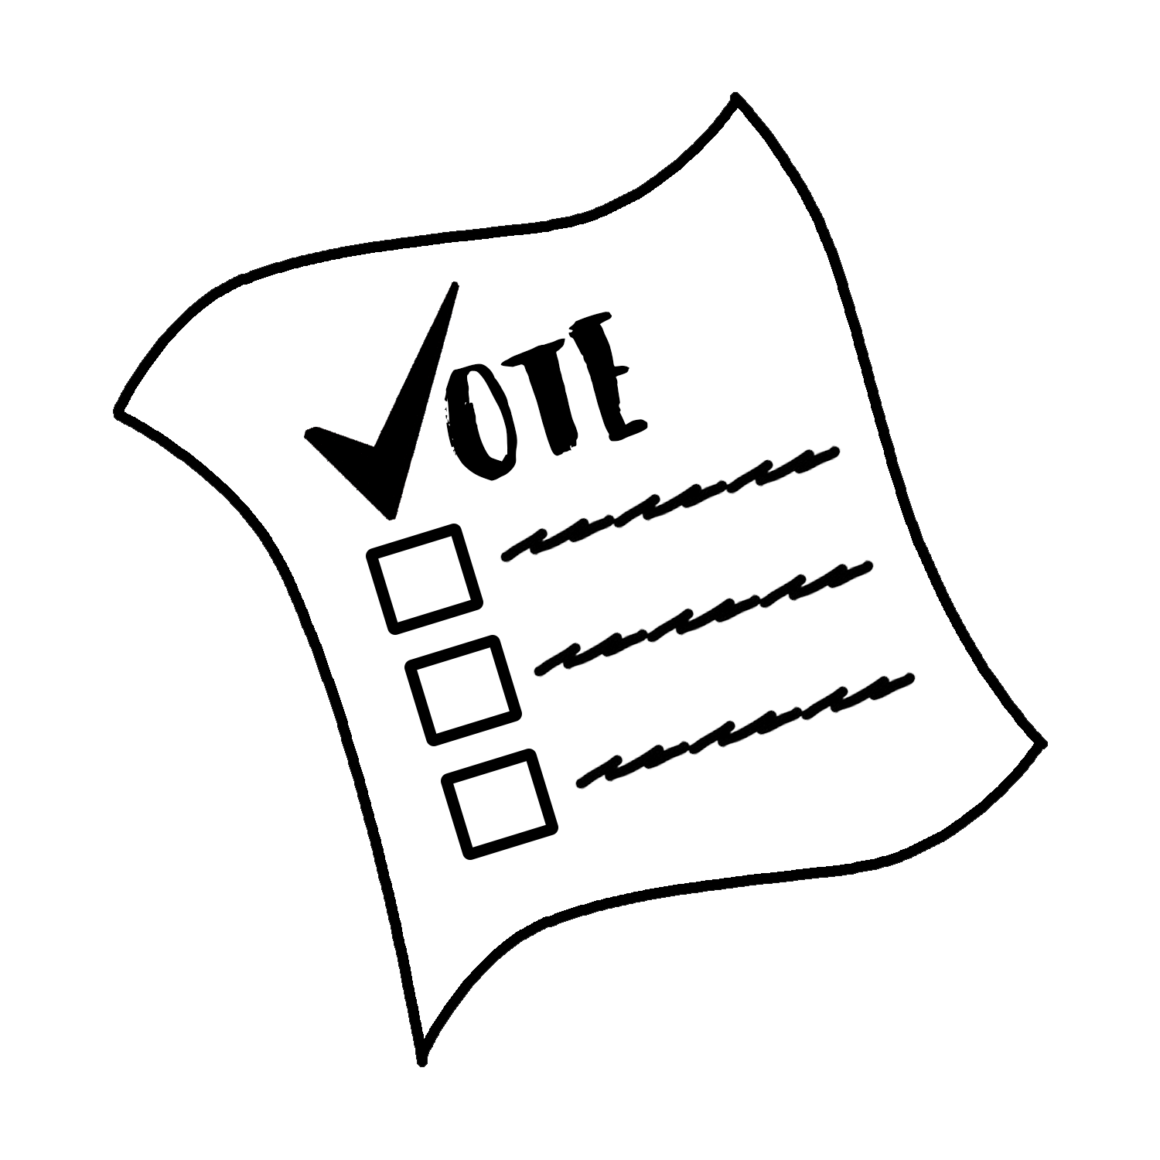 Voting drawing black tuesday. Public sector employees to